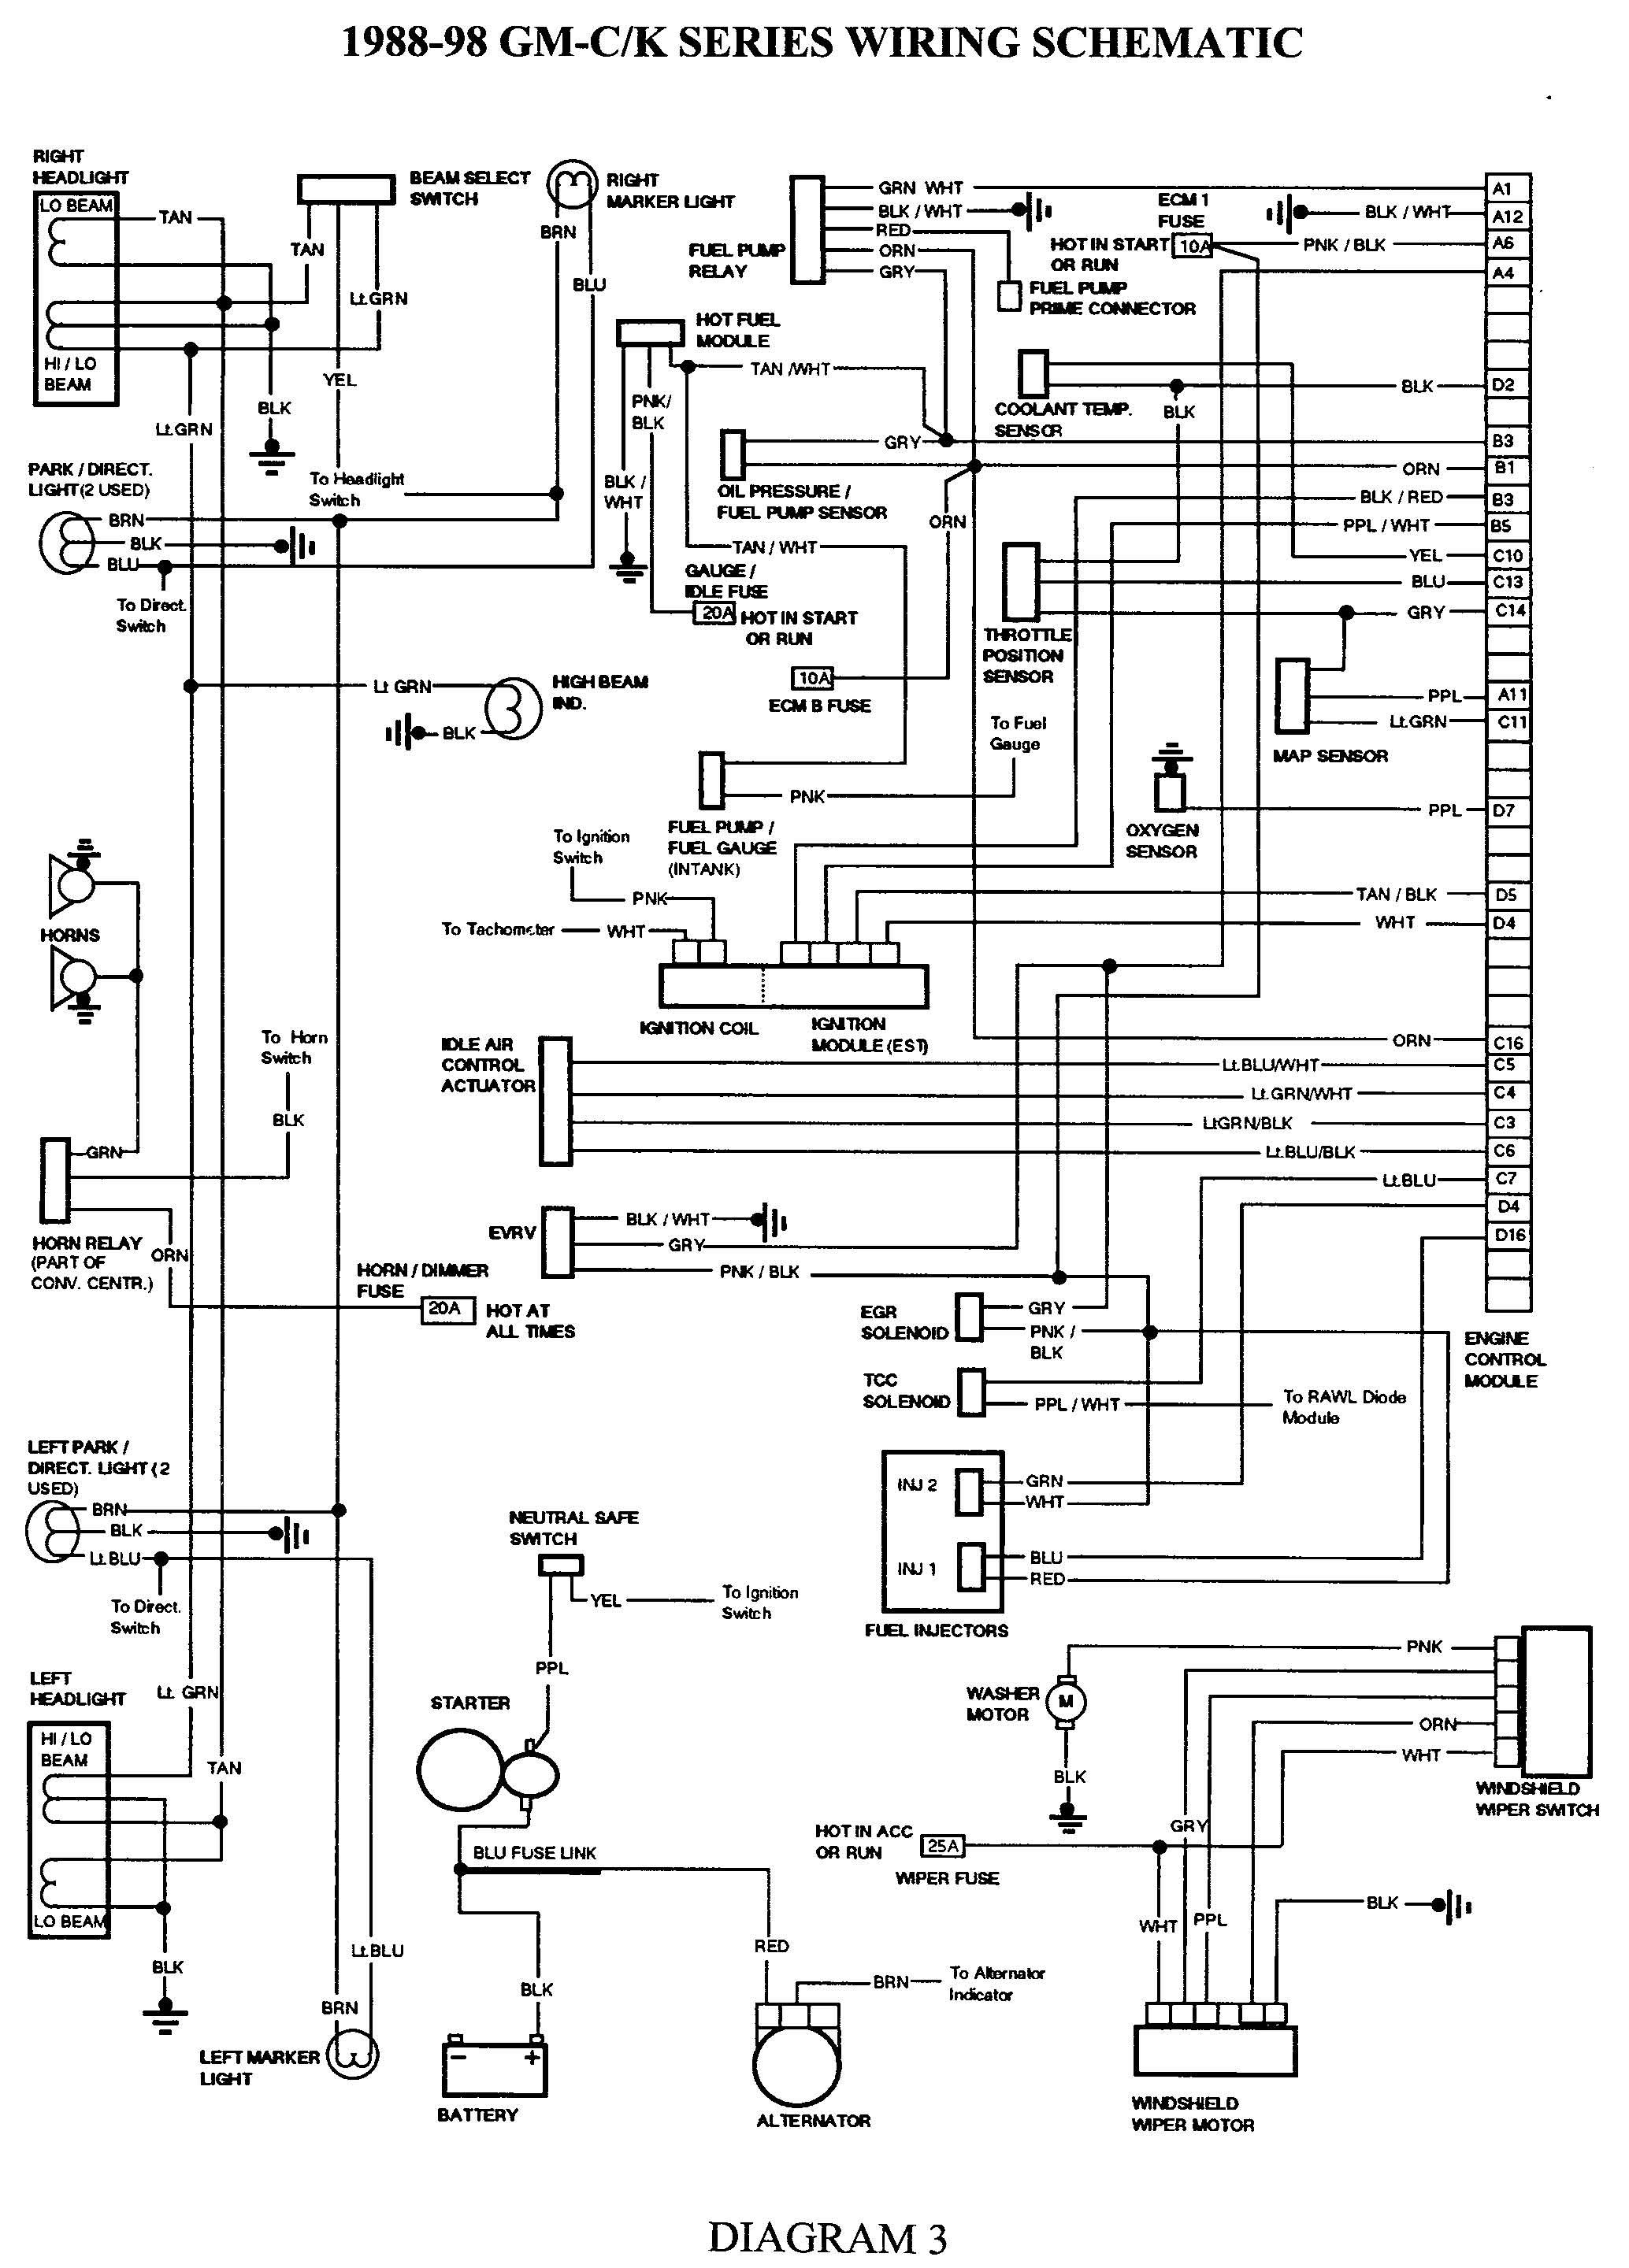 Yukon Wiper Motor Wiring Diagram - Wiring Diagram Data on 1967 wiper motor schematic, cj5 windshield wiper schematic, wiper switch wiring, thomas built bus schematic, 1966 chevy wiper motor schematic, wiper wiring diagram 2001 lincoln, wiper motor circuit board, 1990 chevy wiper pump schematic, 2004 jeep cherokee wiper motor schematic, wiper motor fuse, gm 5 wire wiper schematic, 2003 chevy blazer windshield wiper system schematic, wiper motor power supply, wiper switch wire color, dodge rear wiper motor schematic, wiper motor circuit diagram, 2 speed wiper schematic, ford wiper switch schematic,